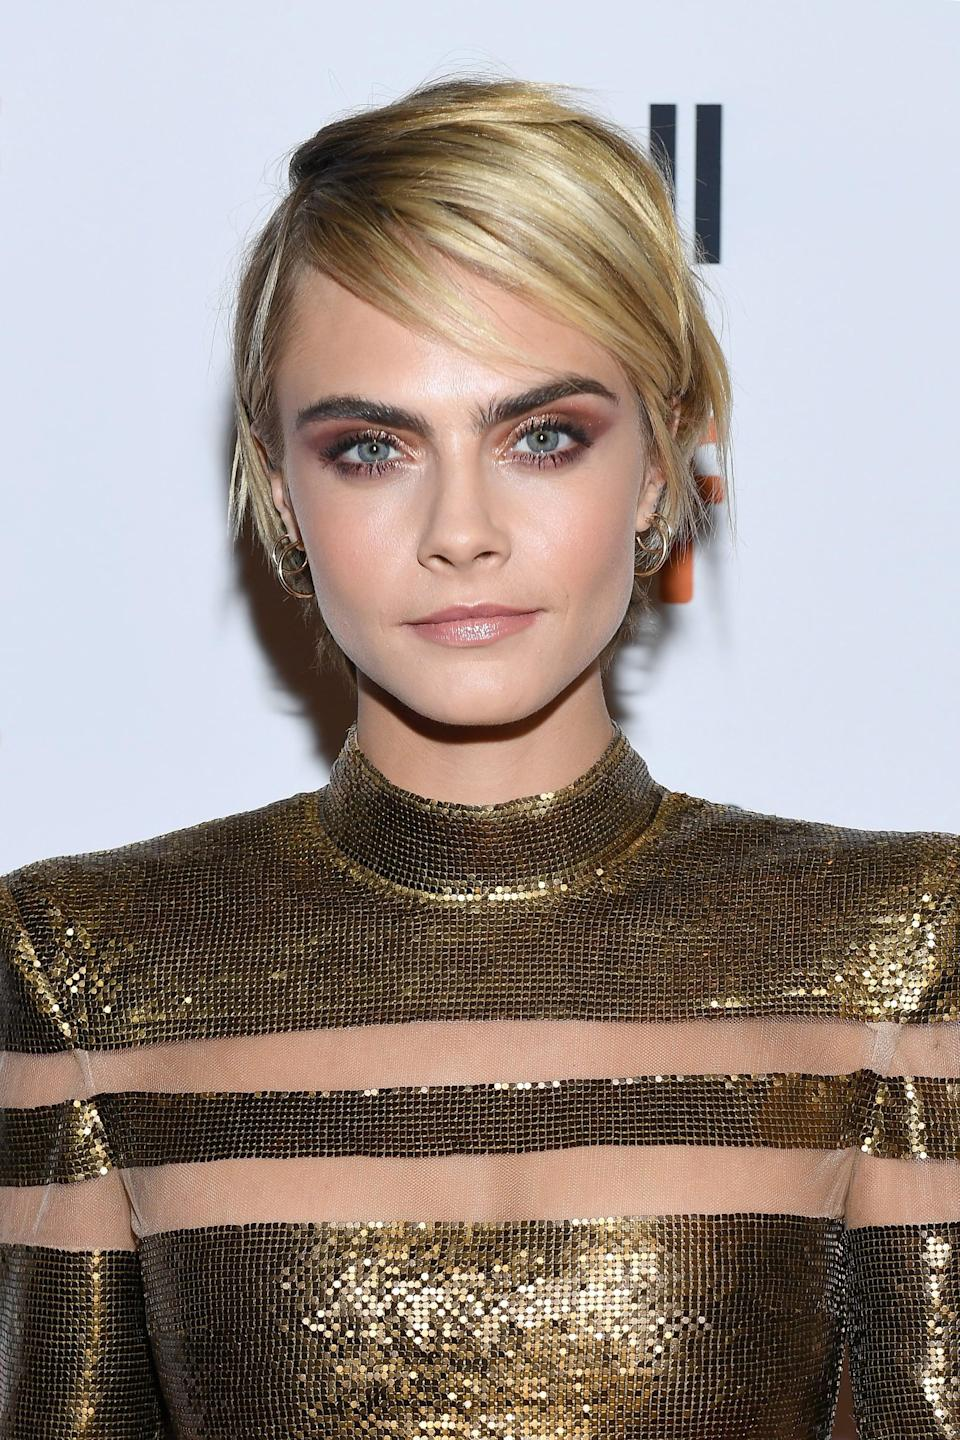 <p>Delevingne defied the awkward grow-out phase with a brighter shade of blond and a choppy, layered pixie cut.</p>